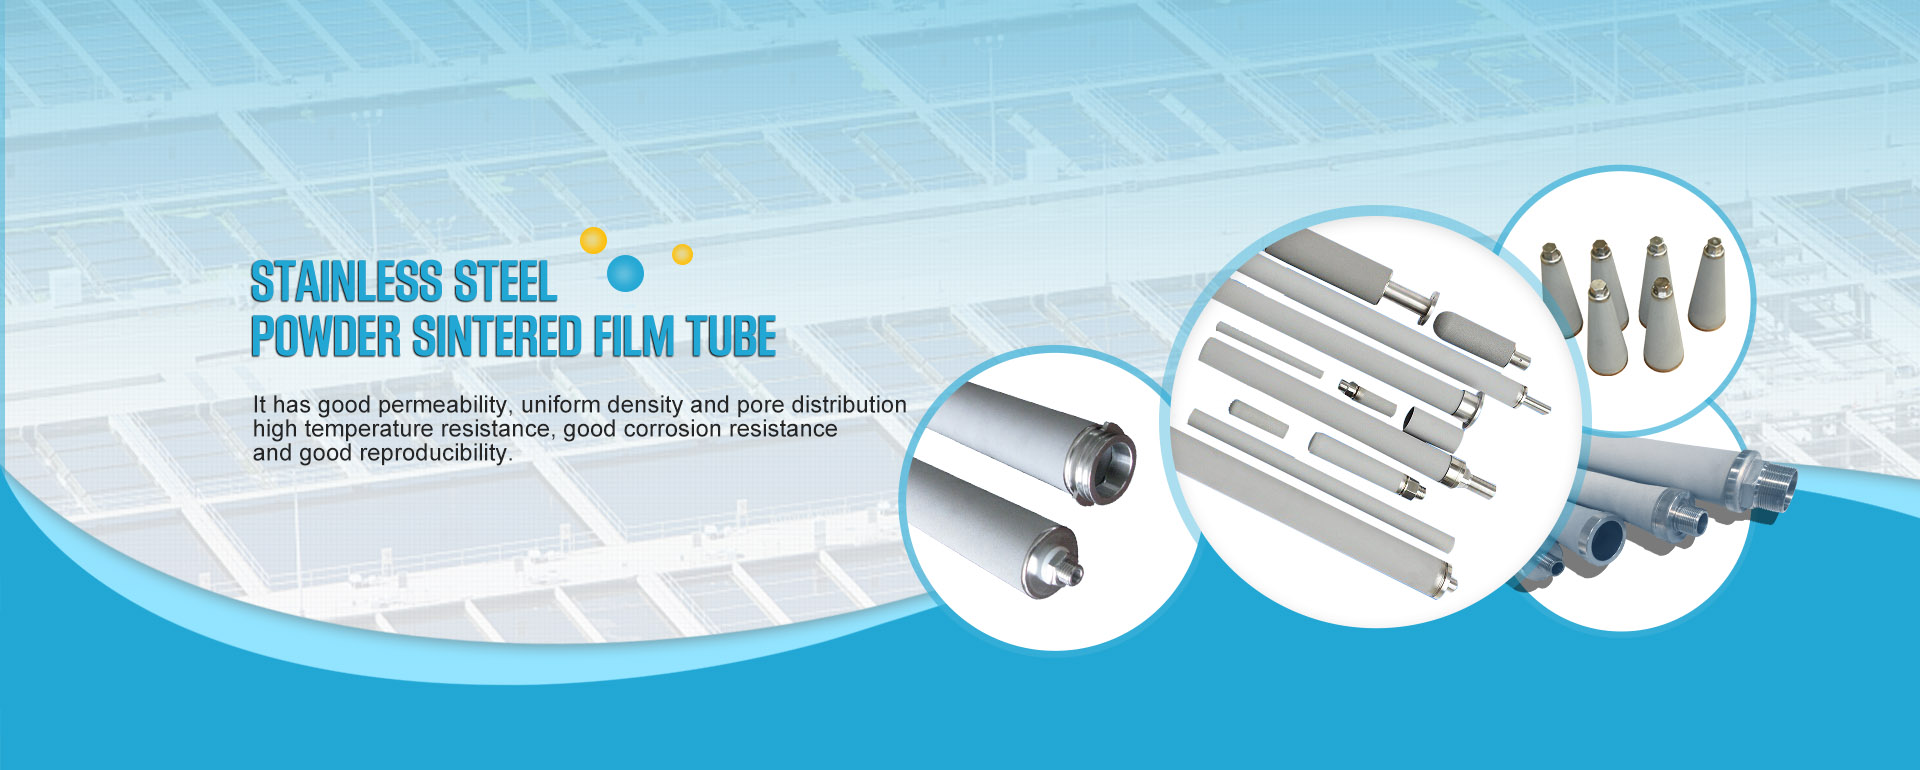 STAINLESS STEEL POWDER SINTERED FILM TUBE